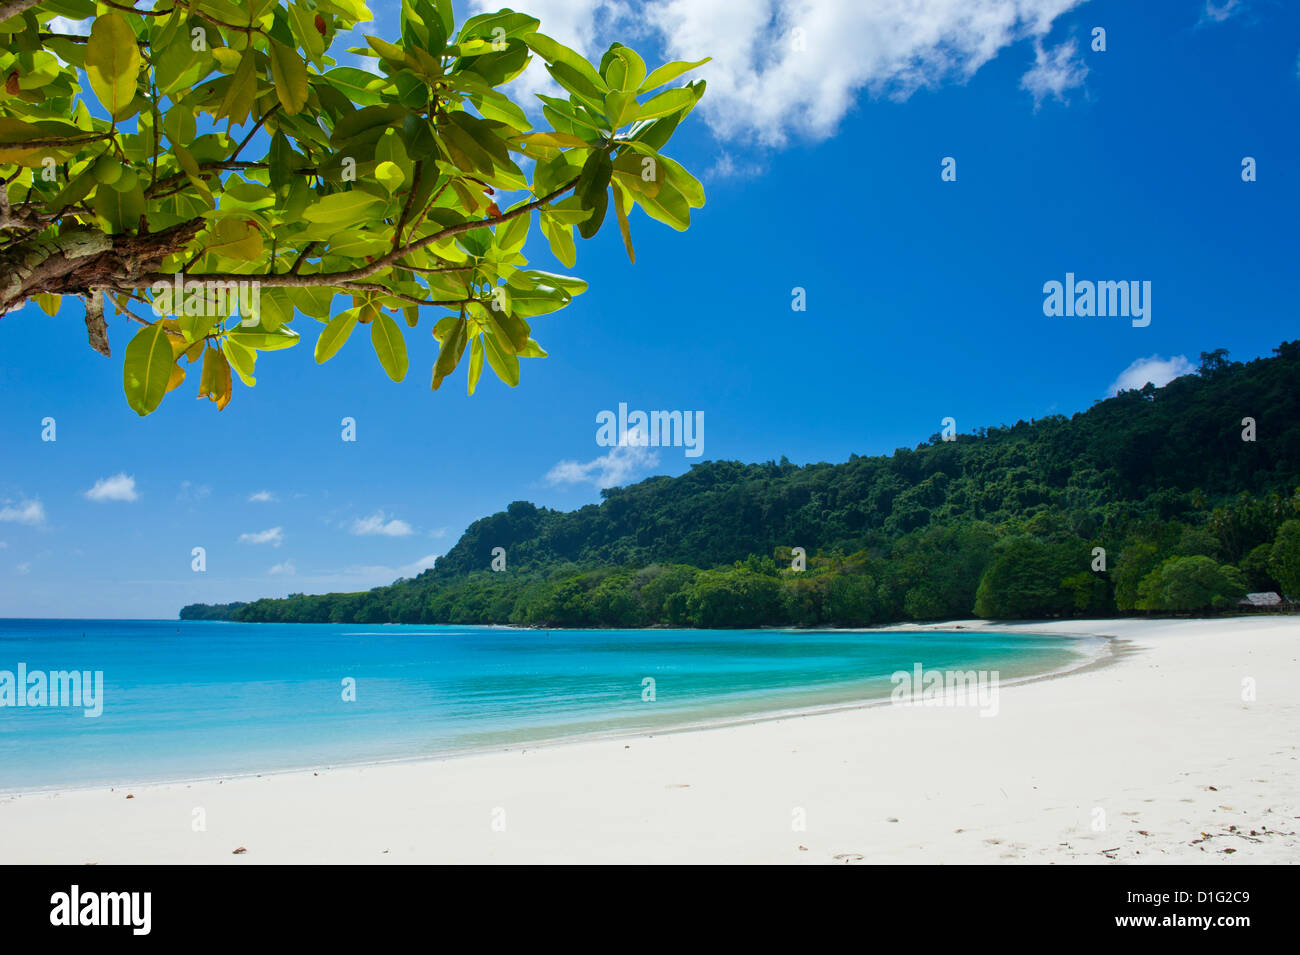 Turquoise water and white sand at the Champagne beach, Island of Espiritu Santo, Vanuatu, South Pacific, Pacific - Stock Image